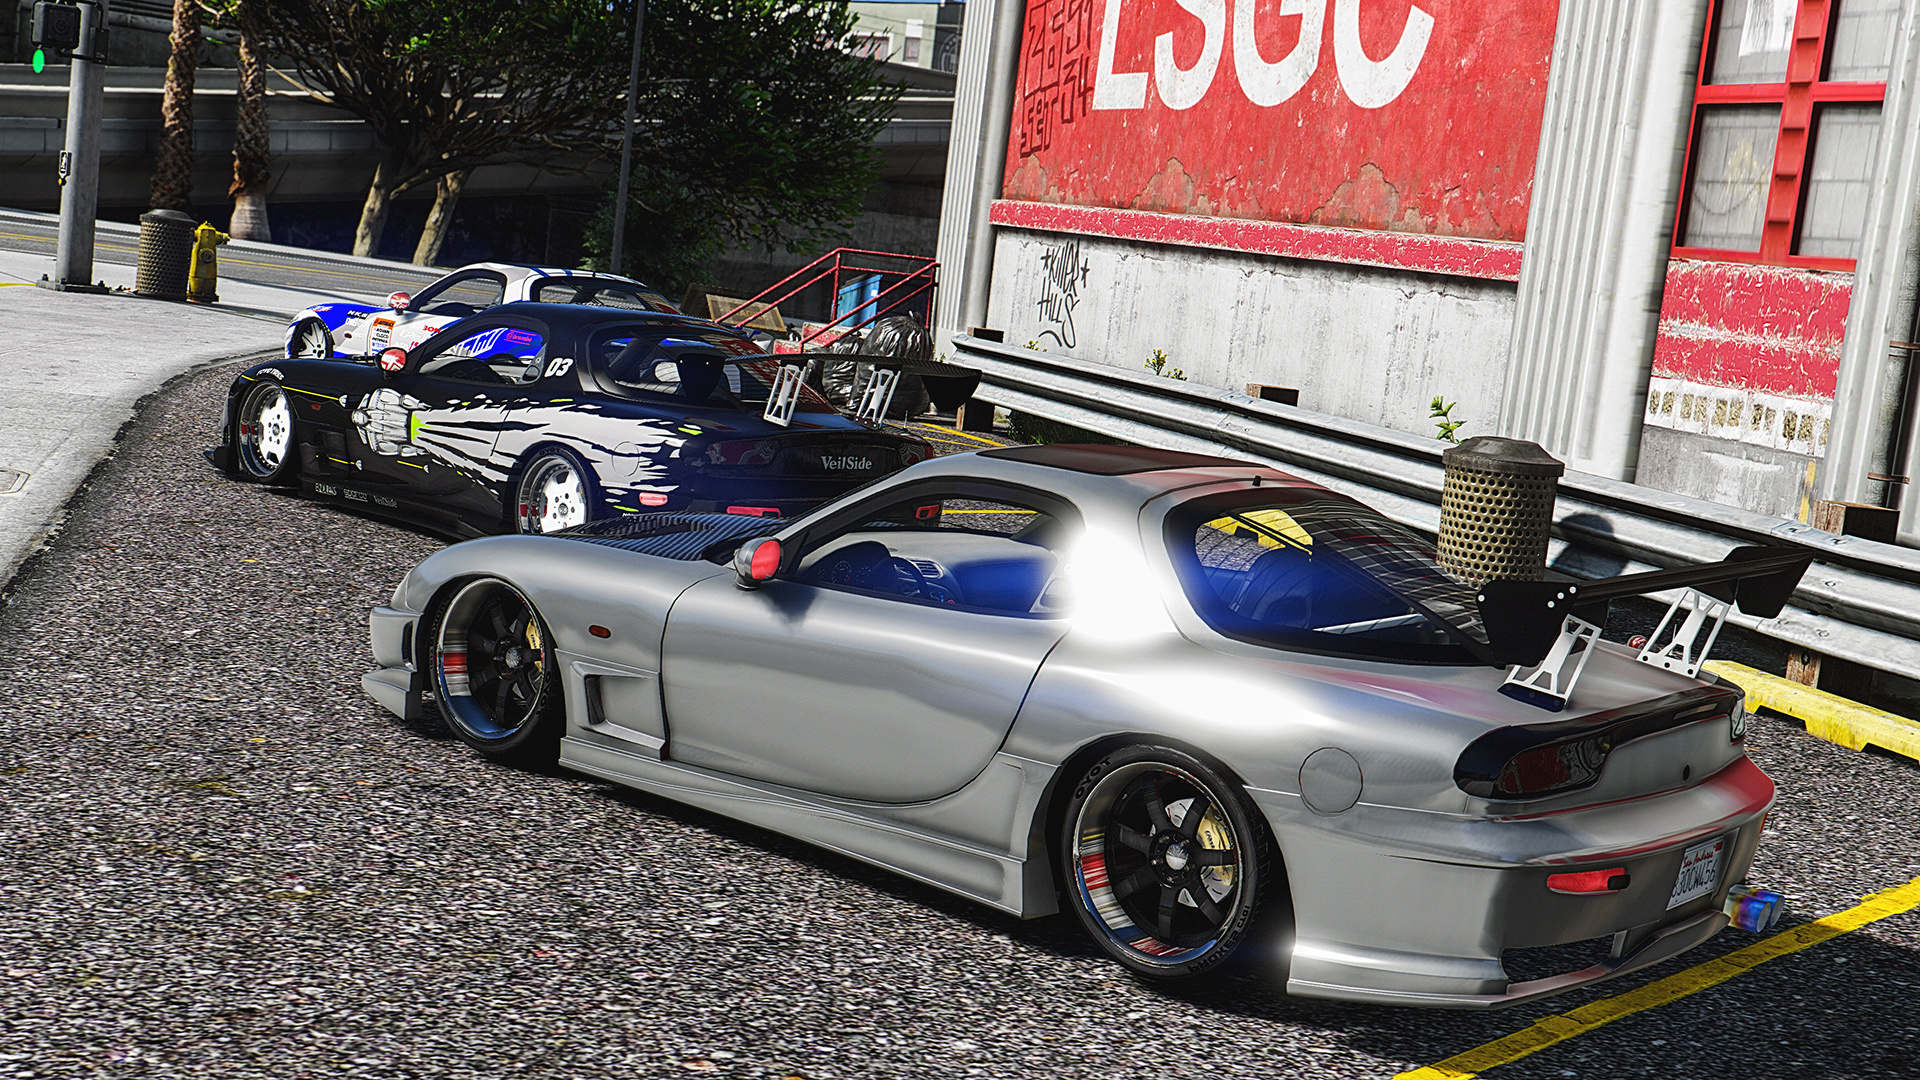 mazda rx7 fd3s add on replace tuning livery. Black Bedroom Furniture Sets. Home Design Ideas